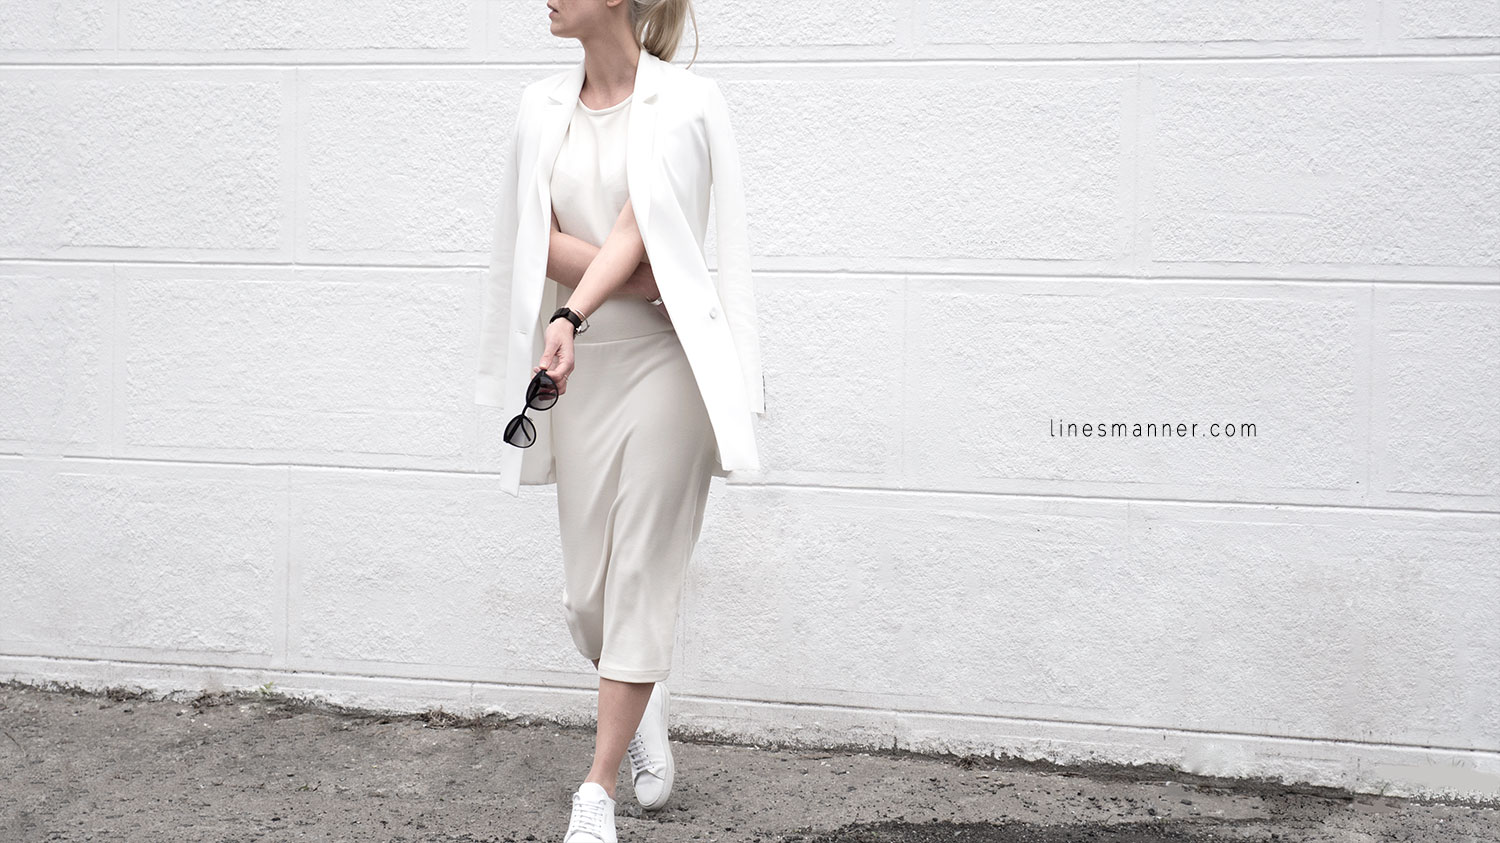 Lines-Manner-Whiteout-Fashion-Outfit-White-Bright-Simplicity-Elegance-Effortless-Anecdote-Degree_Seven-Quality-Summer-Minimal-Essential-Modern-Sleek-Details-6